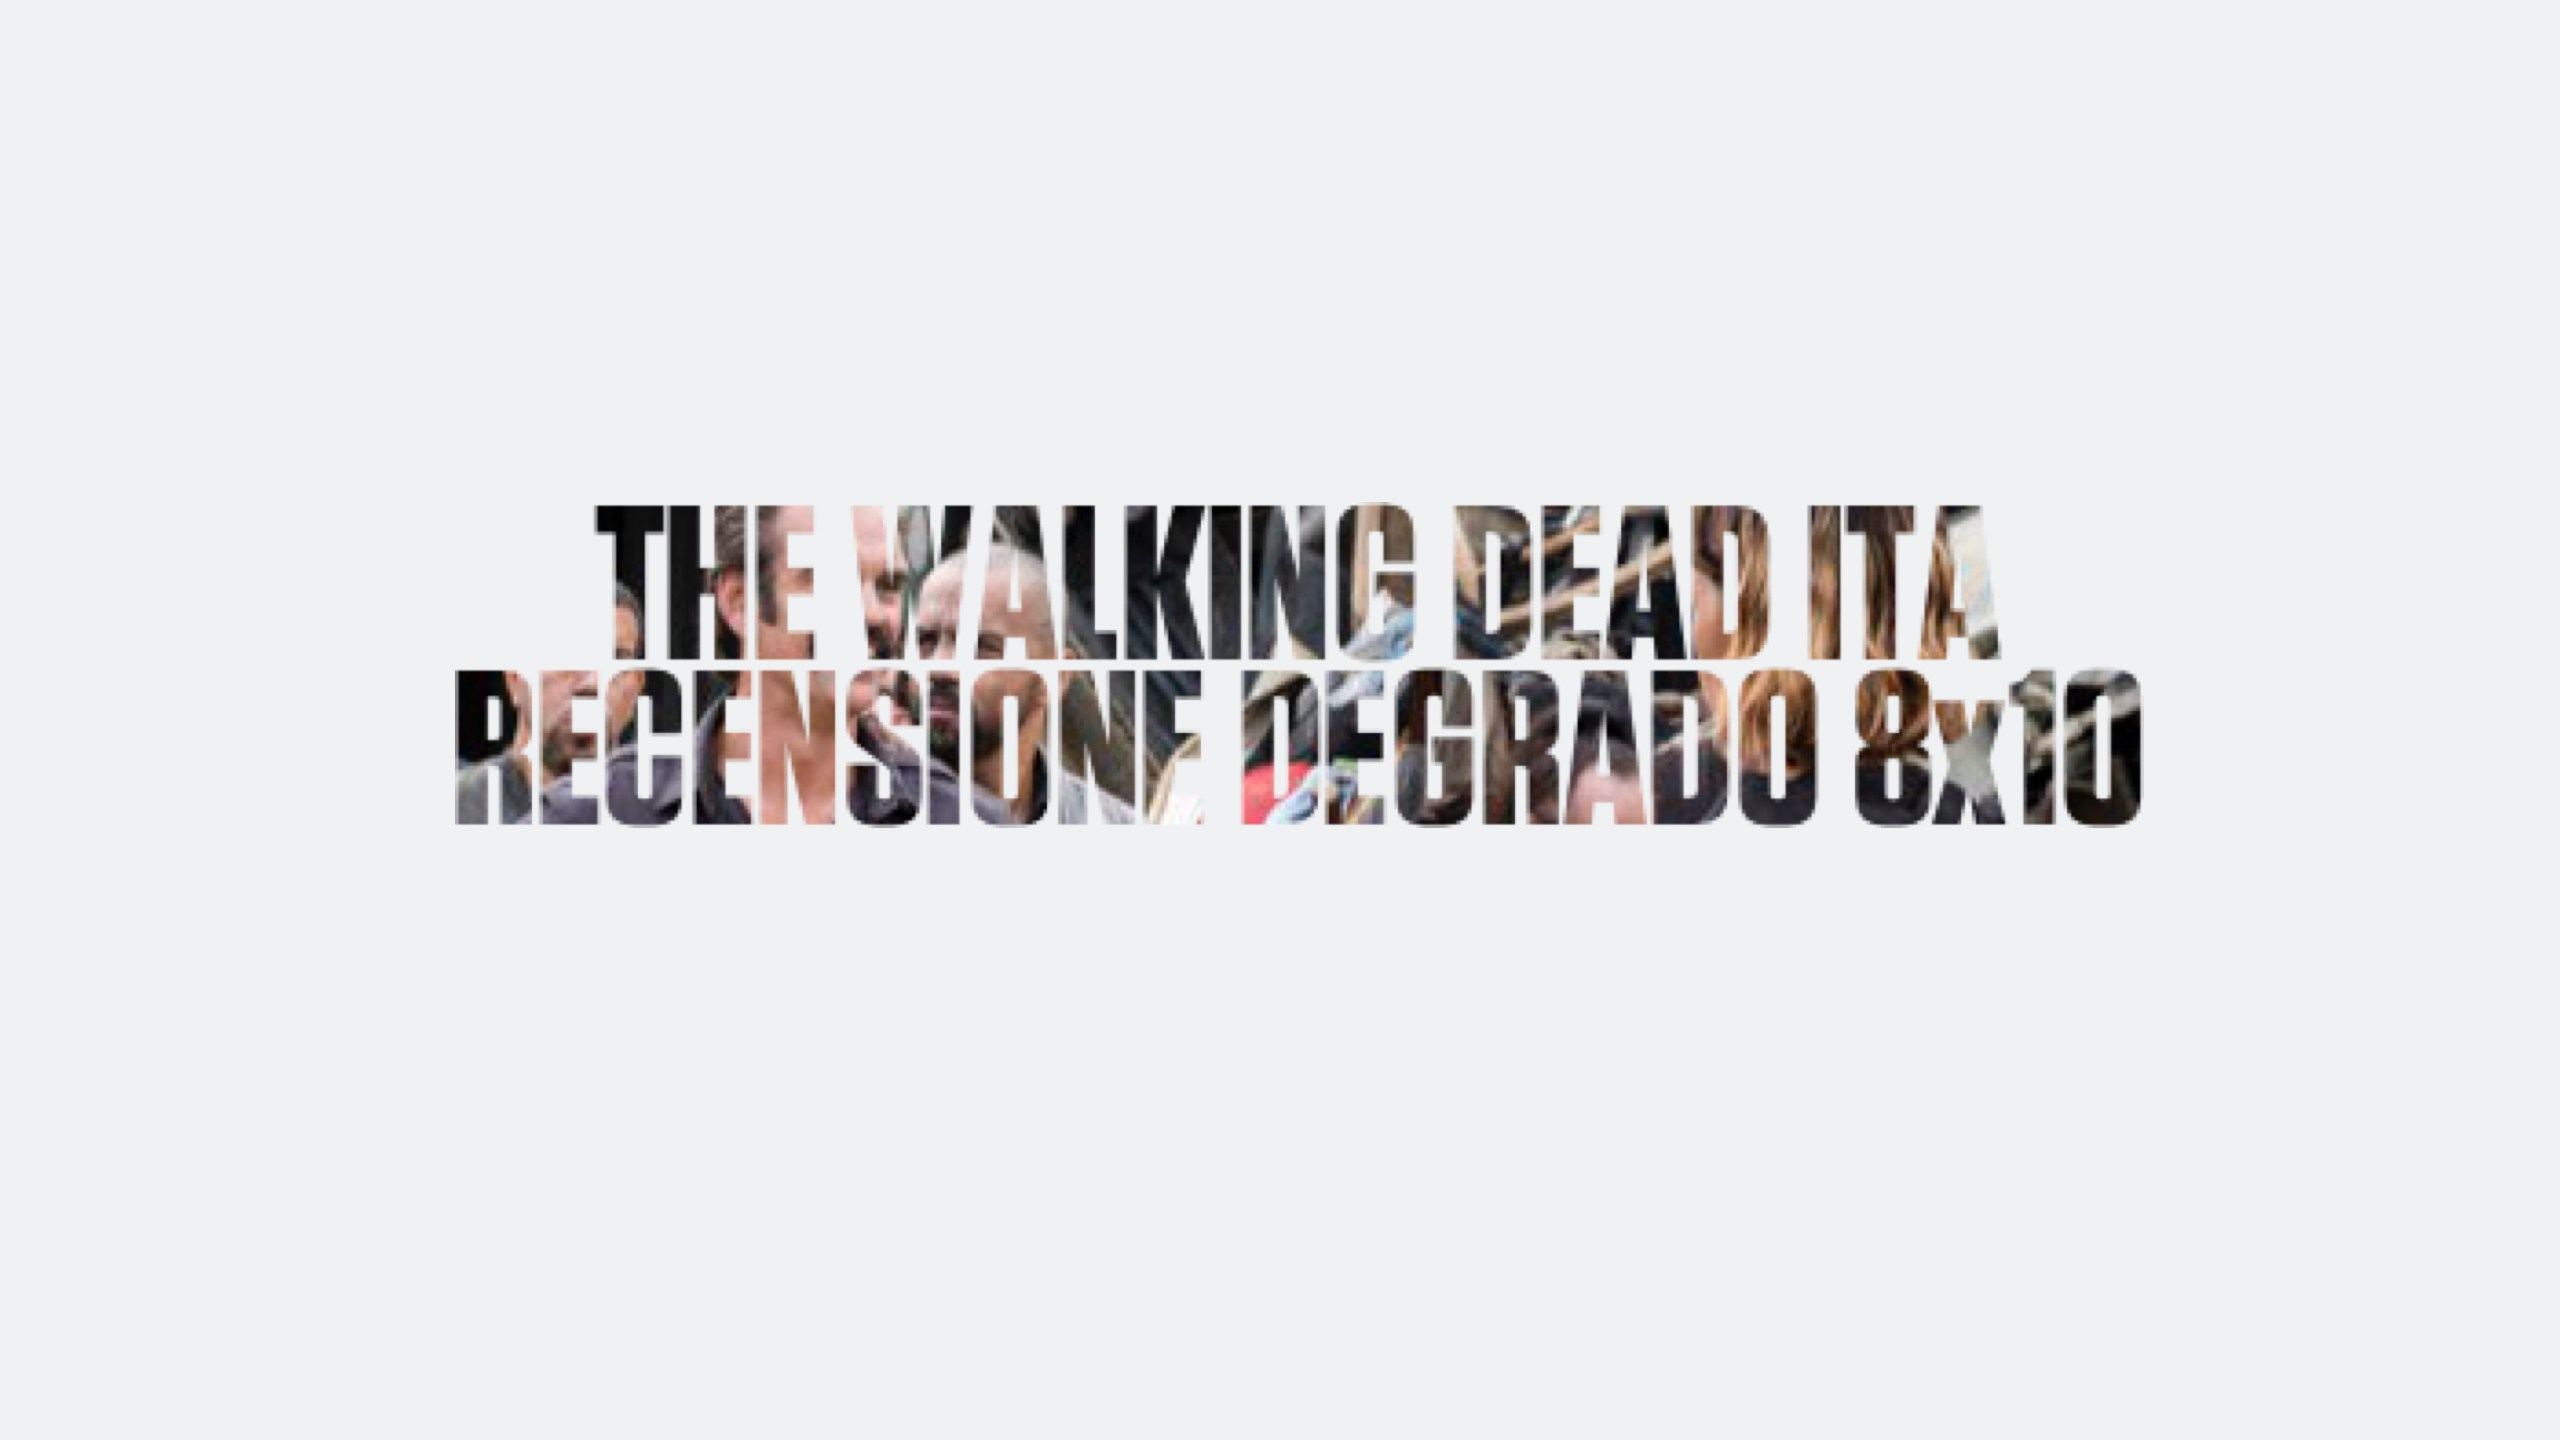 Recensione Degrado The Walking Dead 8×10